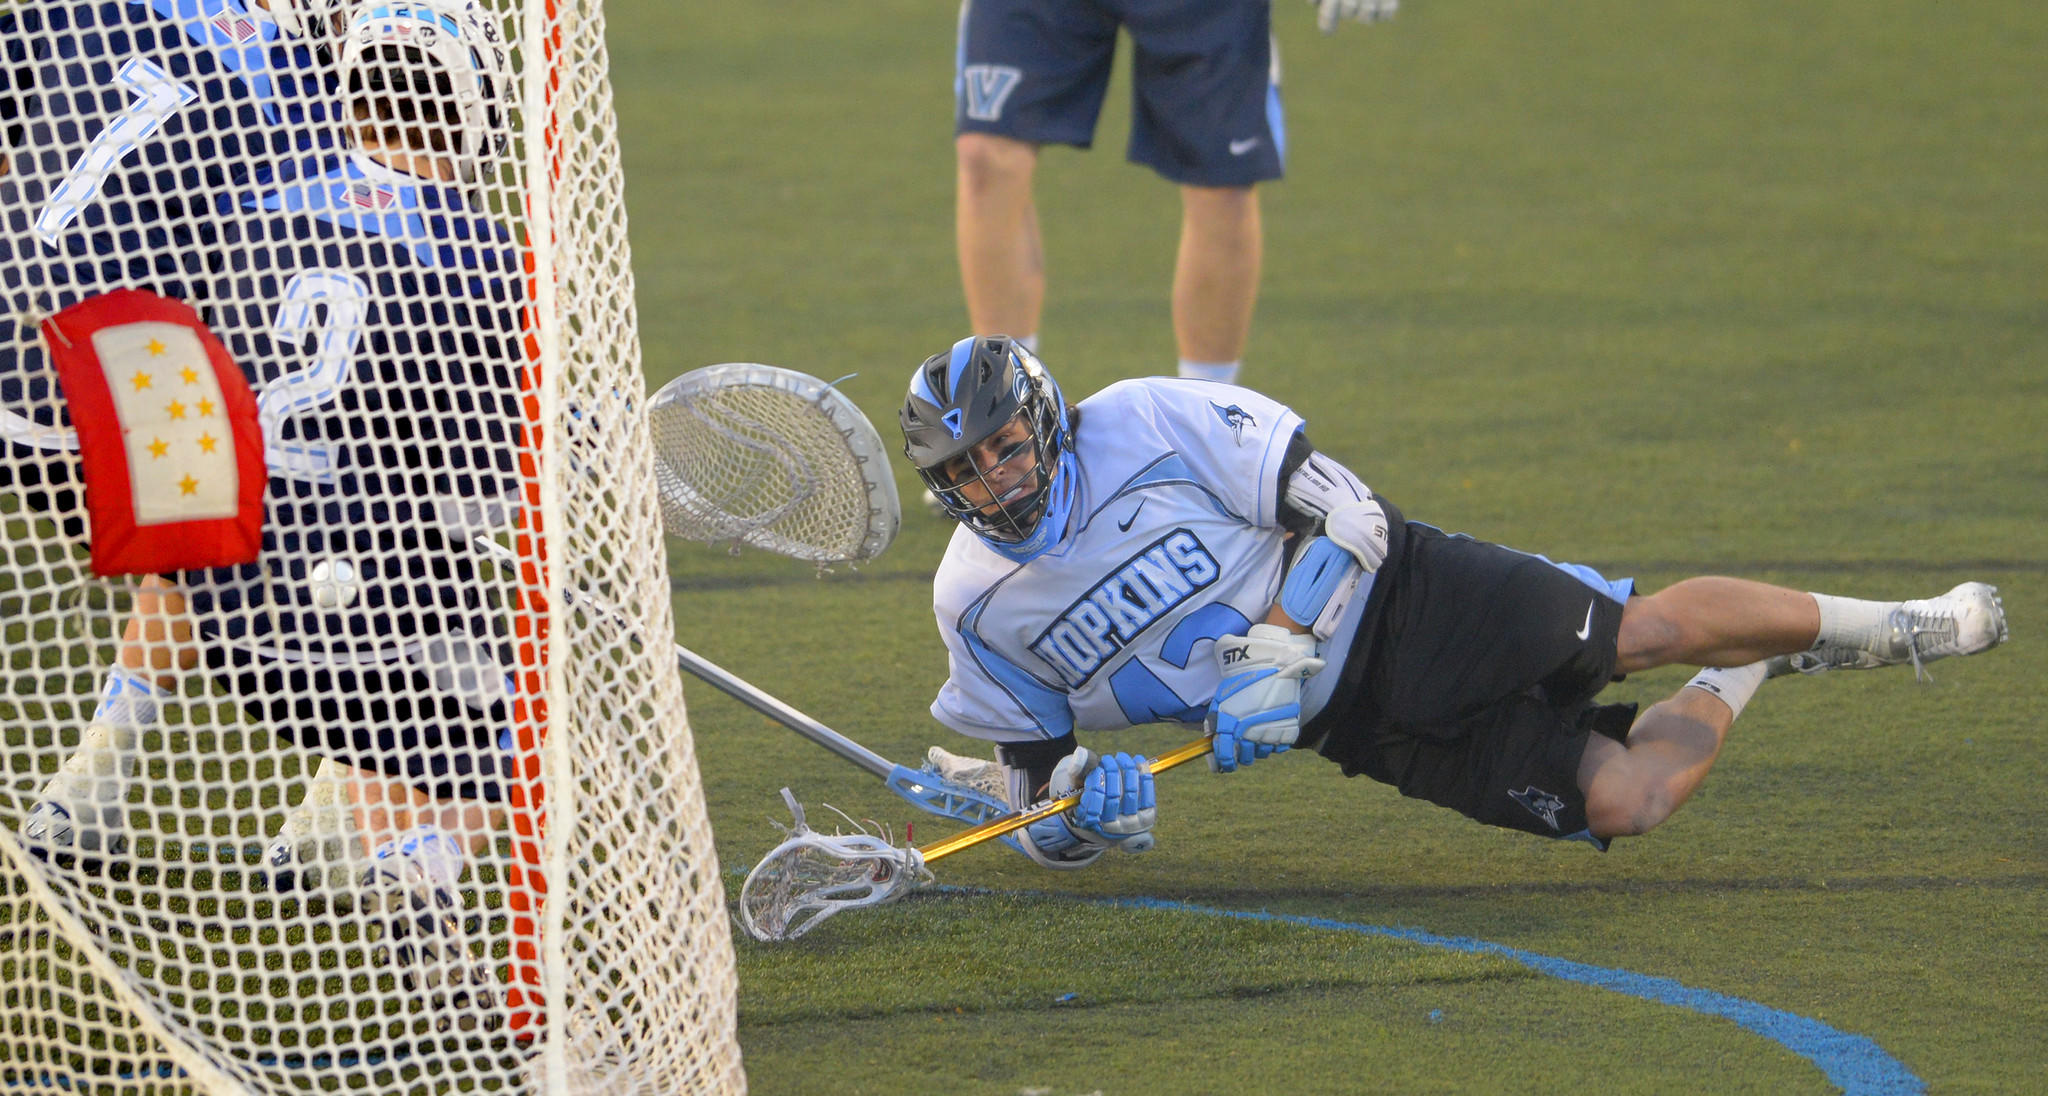 Wells Stanwick's 63 points are the most by a Hopkins player since Dan Denihan had 65 in 2000.